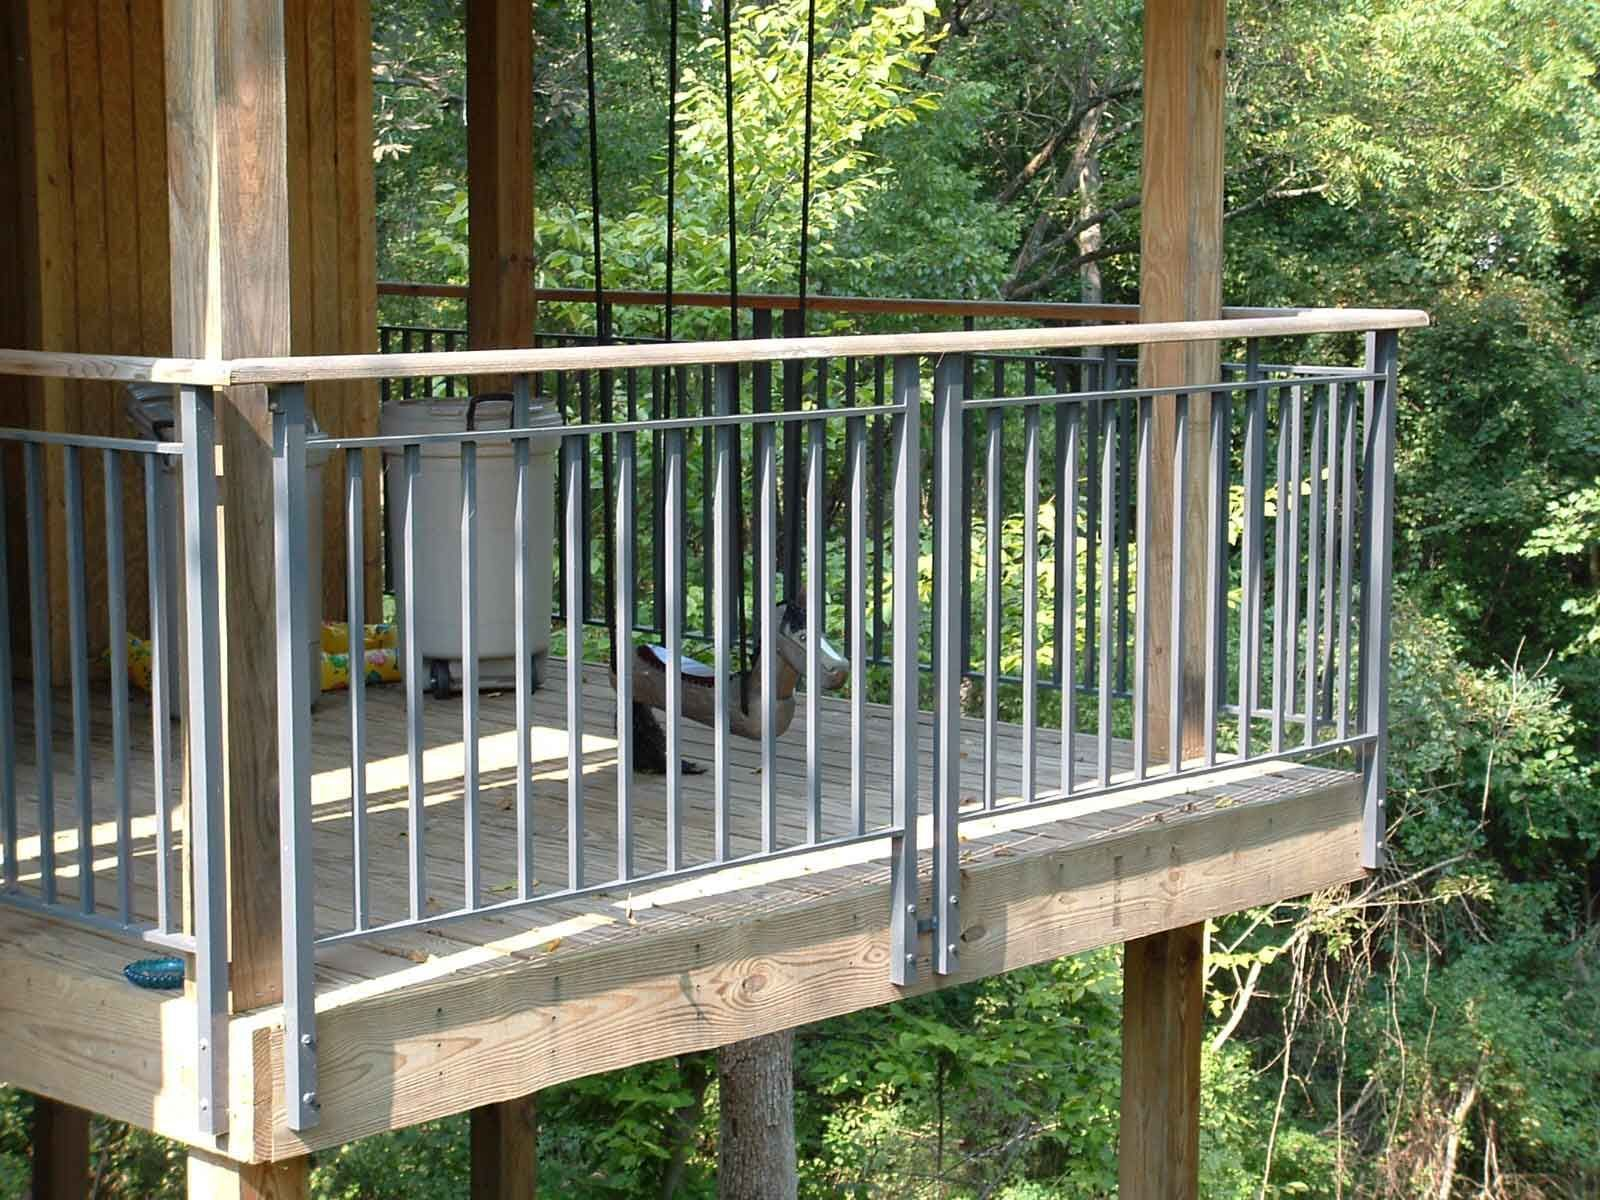 Prefab Metal Deck Railing • Decks Ideas | Deck railing in